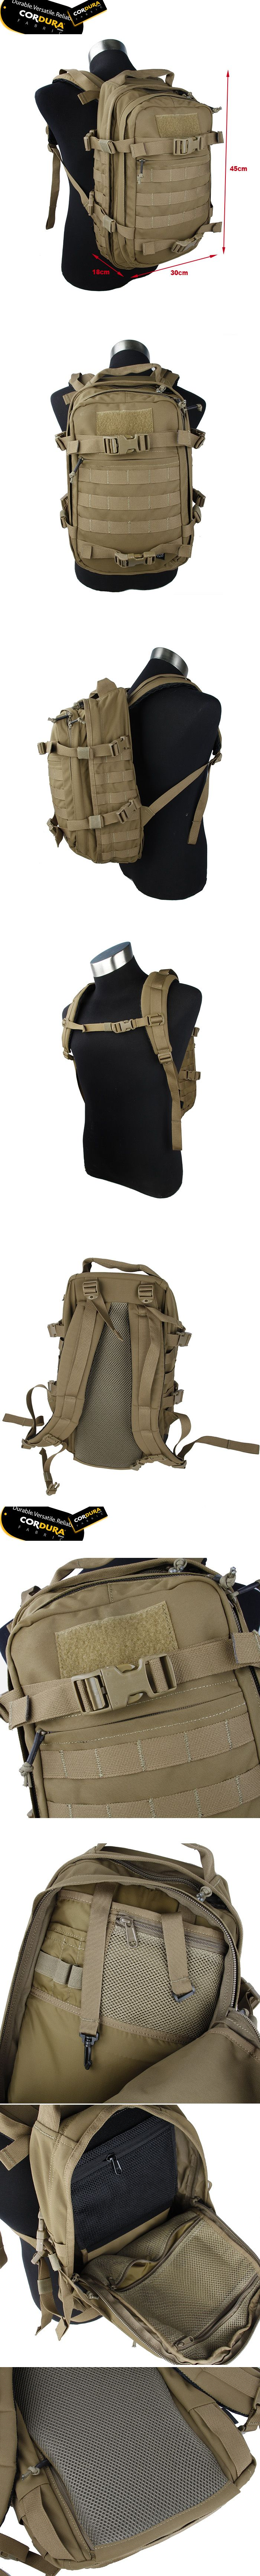 EbairSoft Airsoft parts & Tactical Gear - G TMC DYP VENT MOLLE Pack ( CB ) DYT029-CB